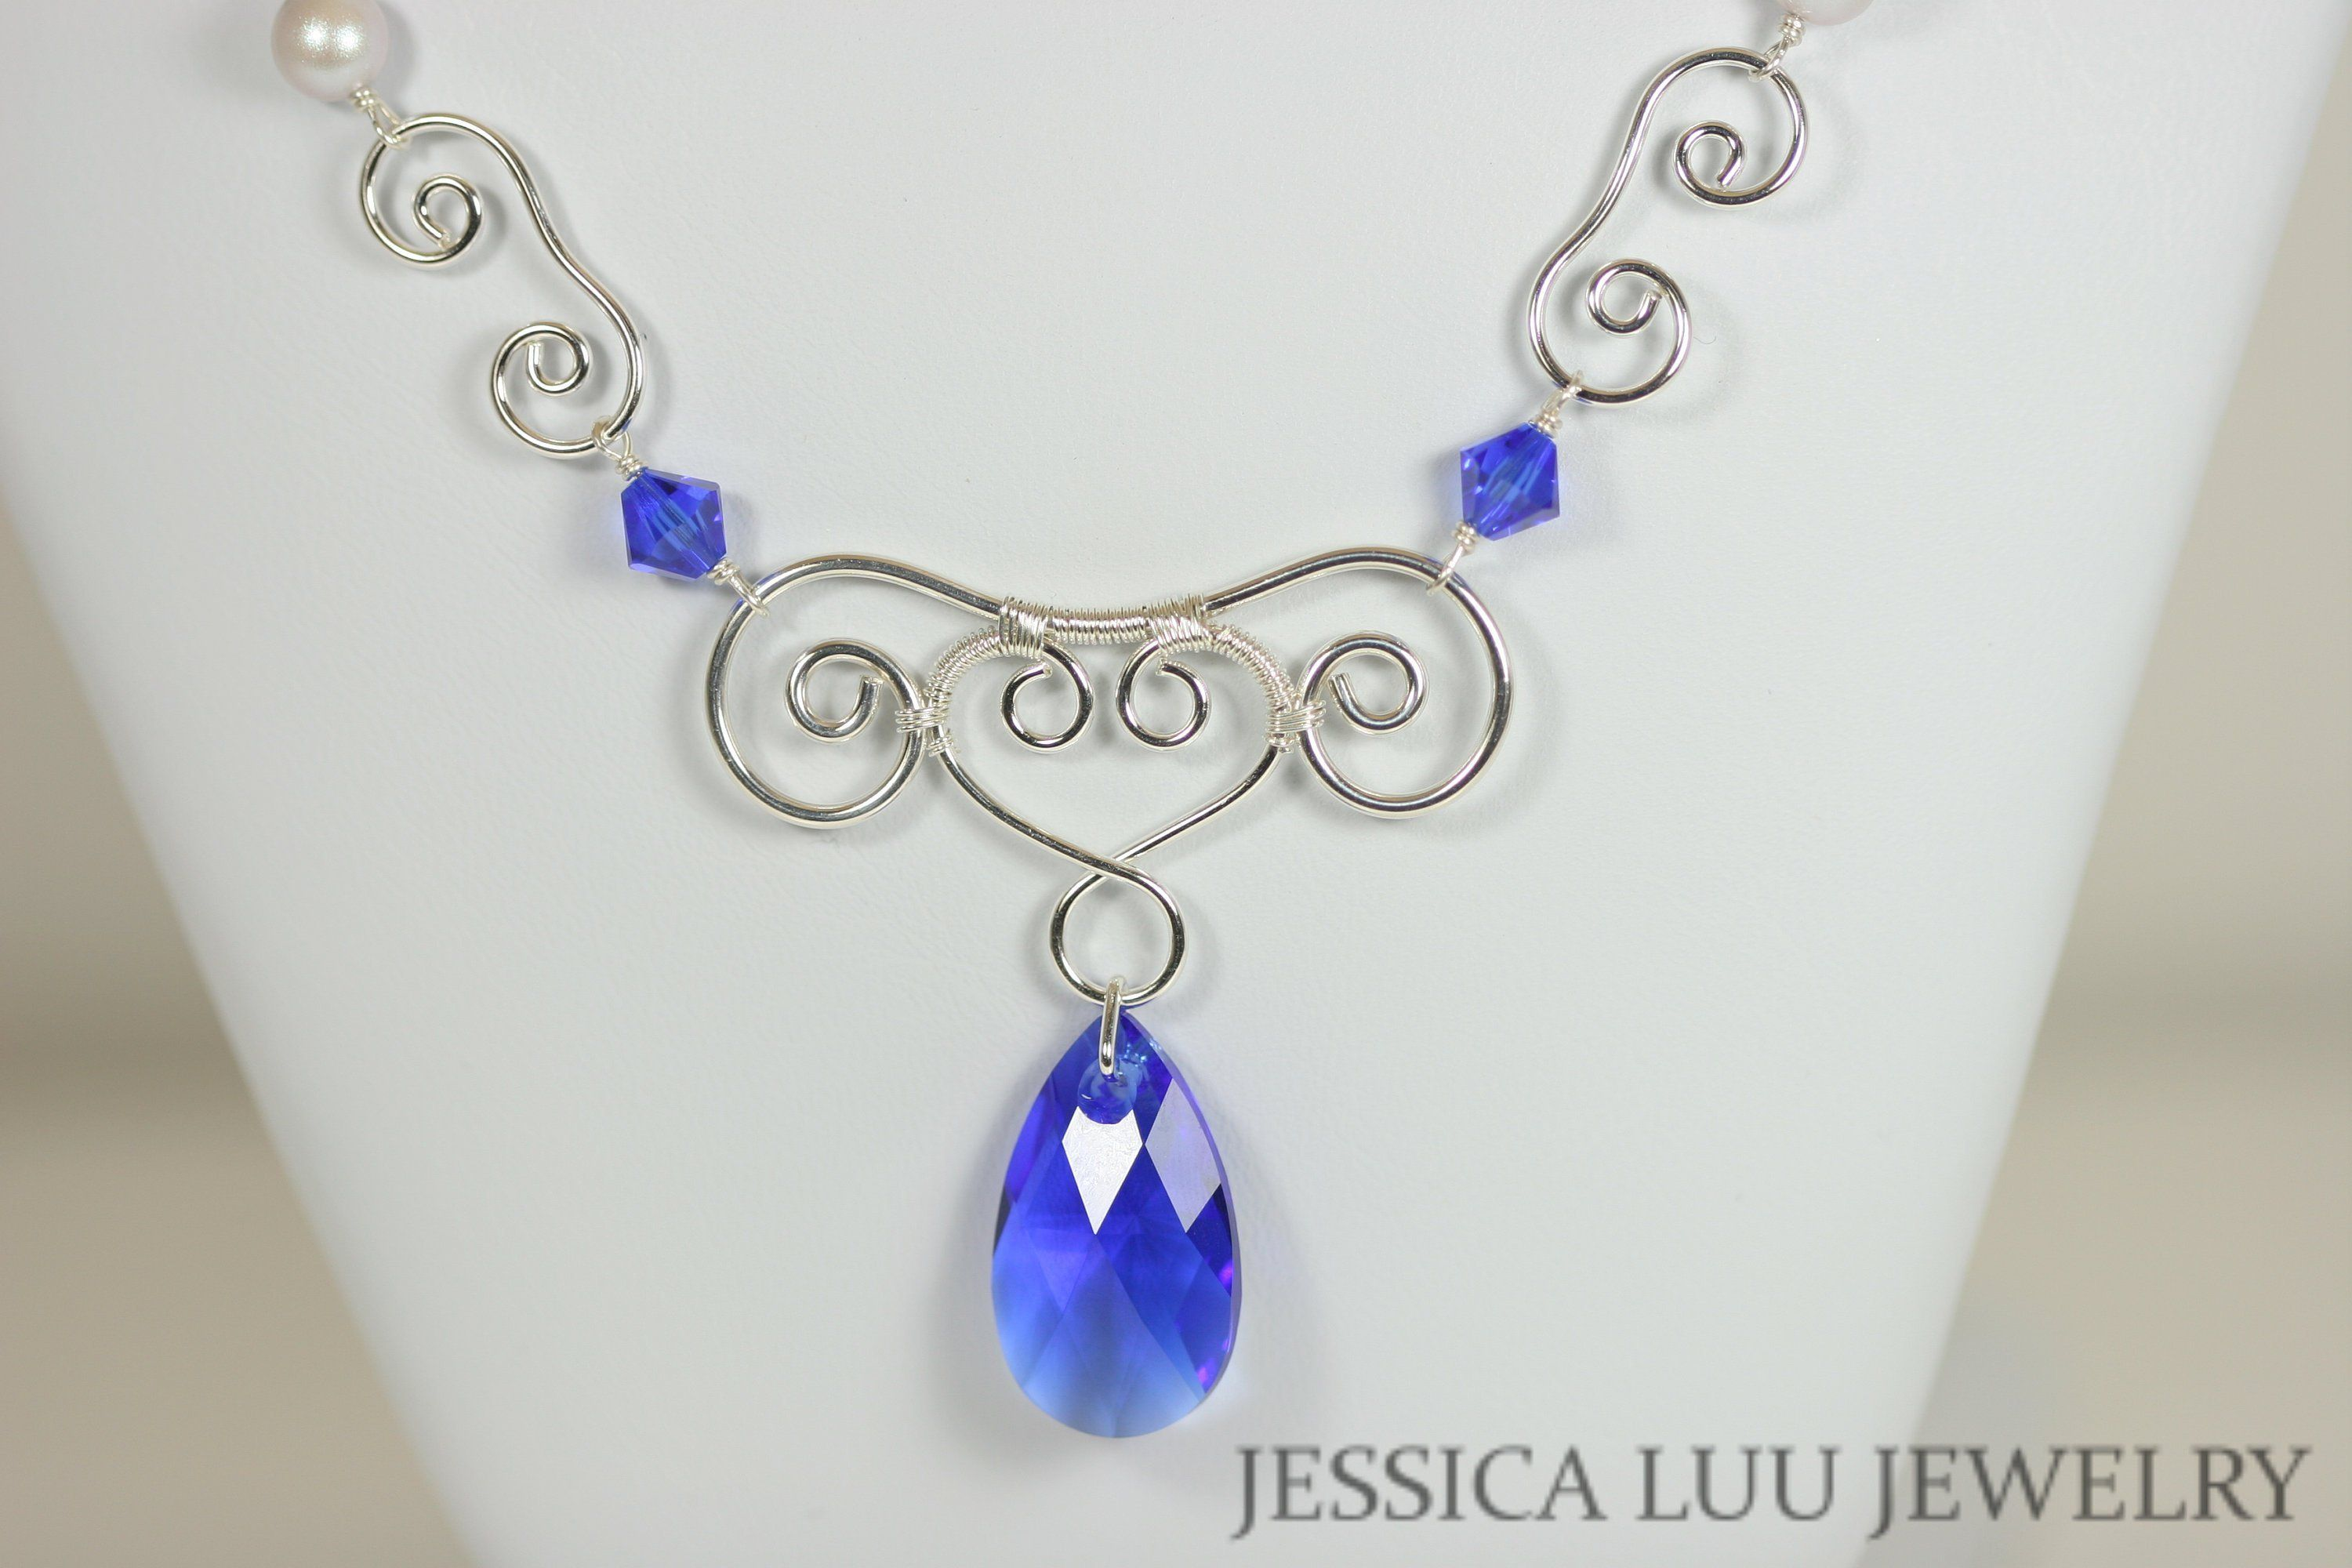 740453ad3 Sterling Silver Cobalt Blue Necklace with Majestic Blue Swarovski Crystal  Pendant and Iridescent Dove Grey Swarovski Pearls Handmade